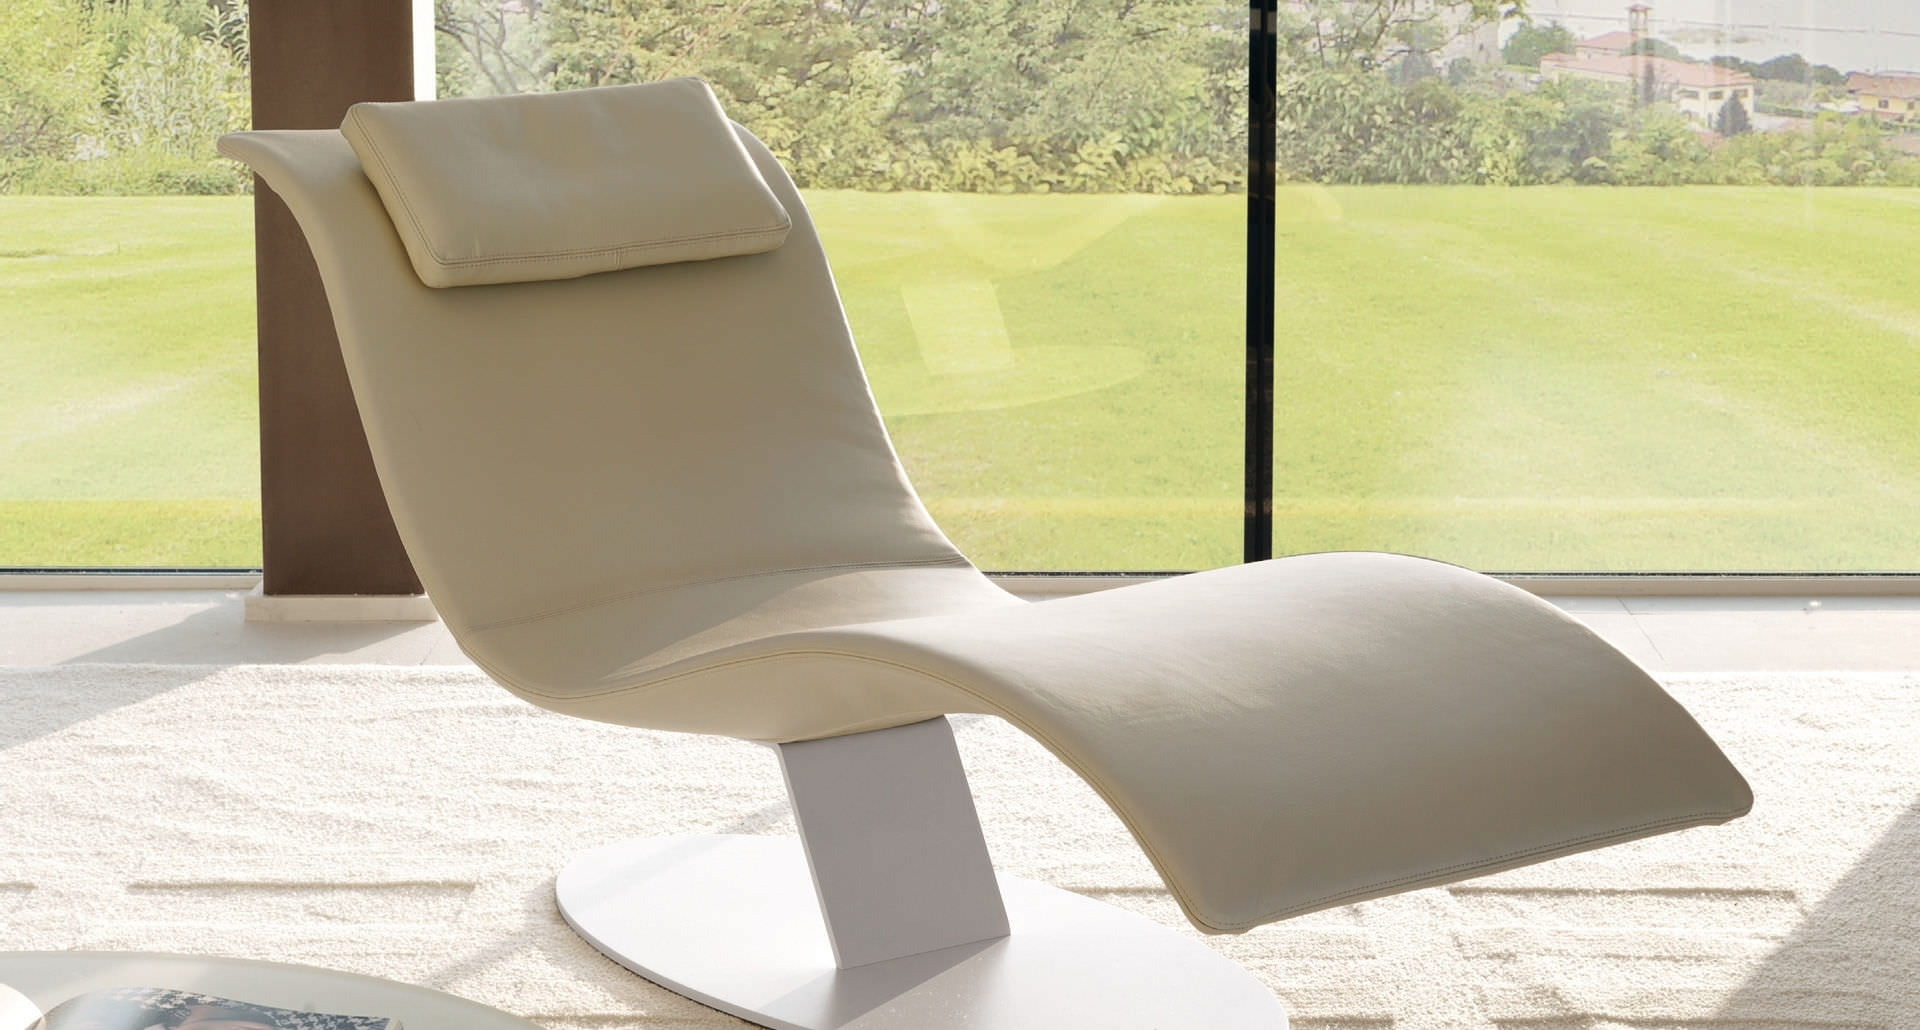 Cream Contemporary Floating Chaise Lounge Featuring Curve Shaped Intended For Widely Used Floating Chaise Lounges (View 3 of 15)